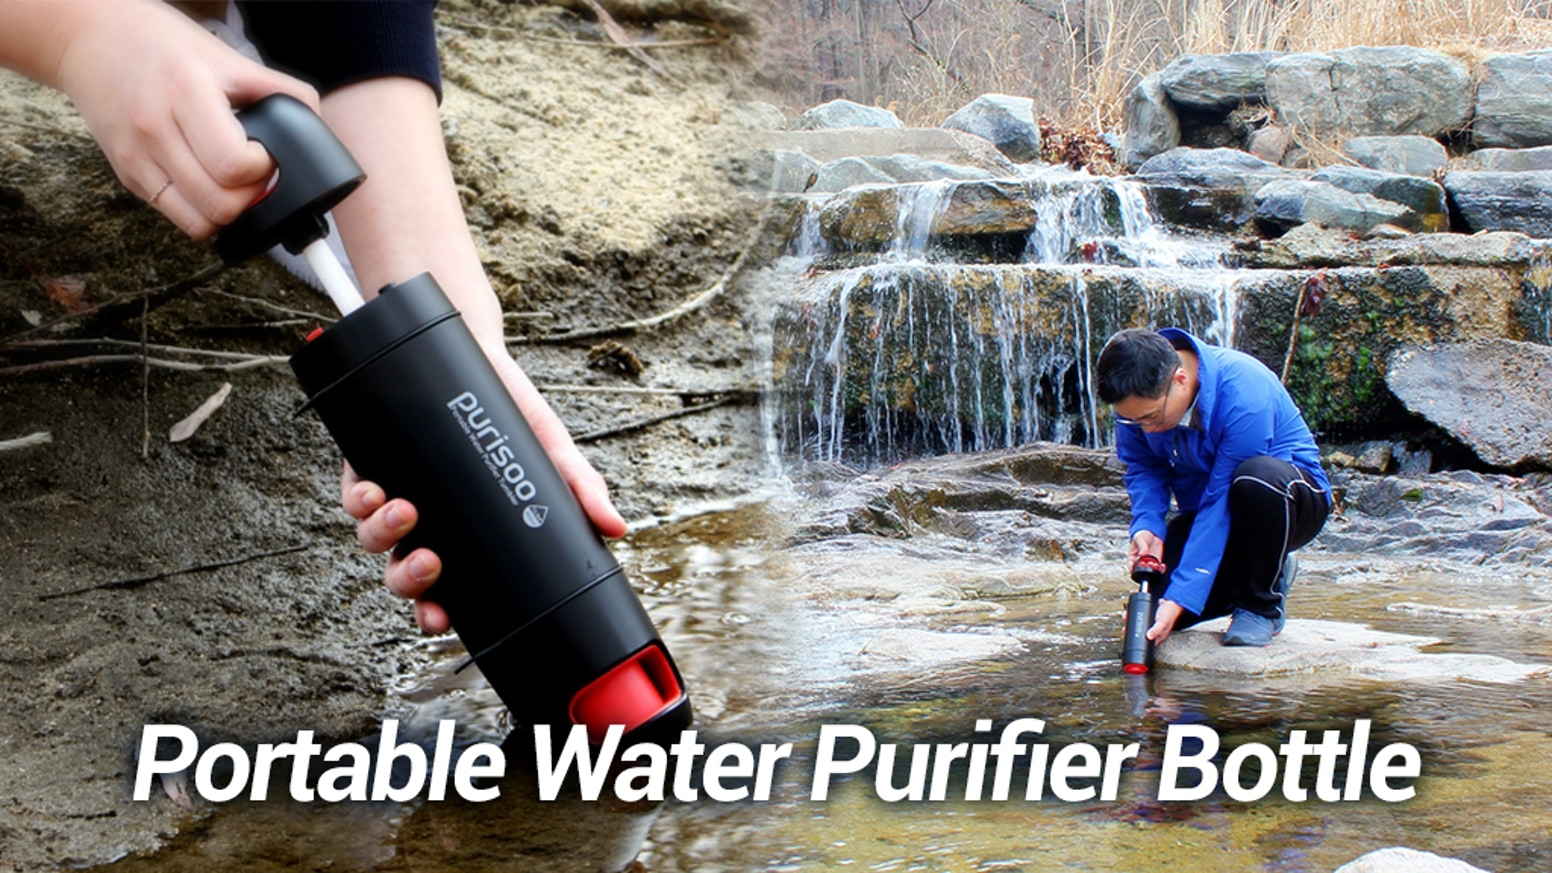 Purify water anytime, anywhere. No contaminated water put in water bottle anymore. Manual Pump Technology. Use Purifier & Water Bottle.